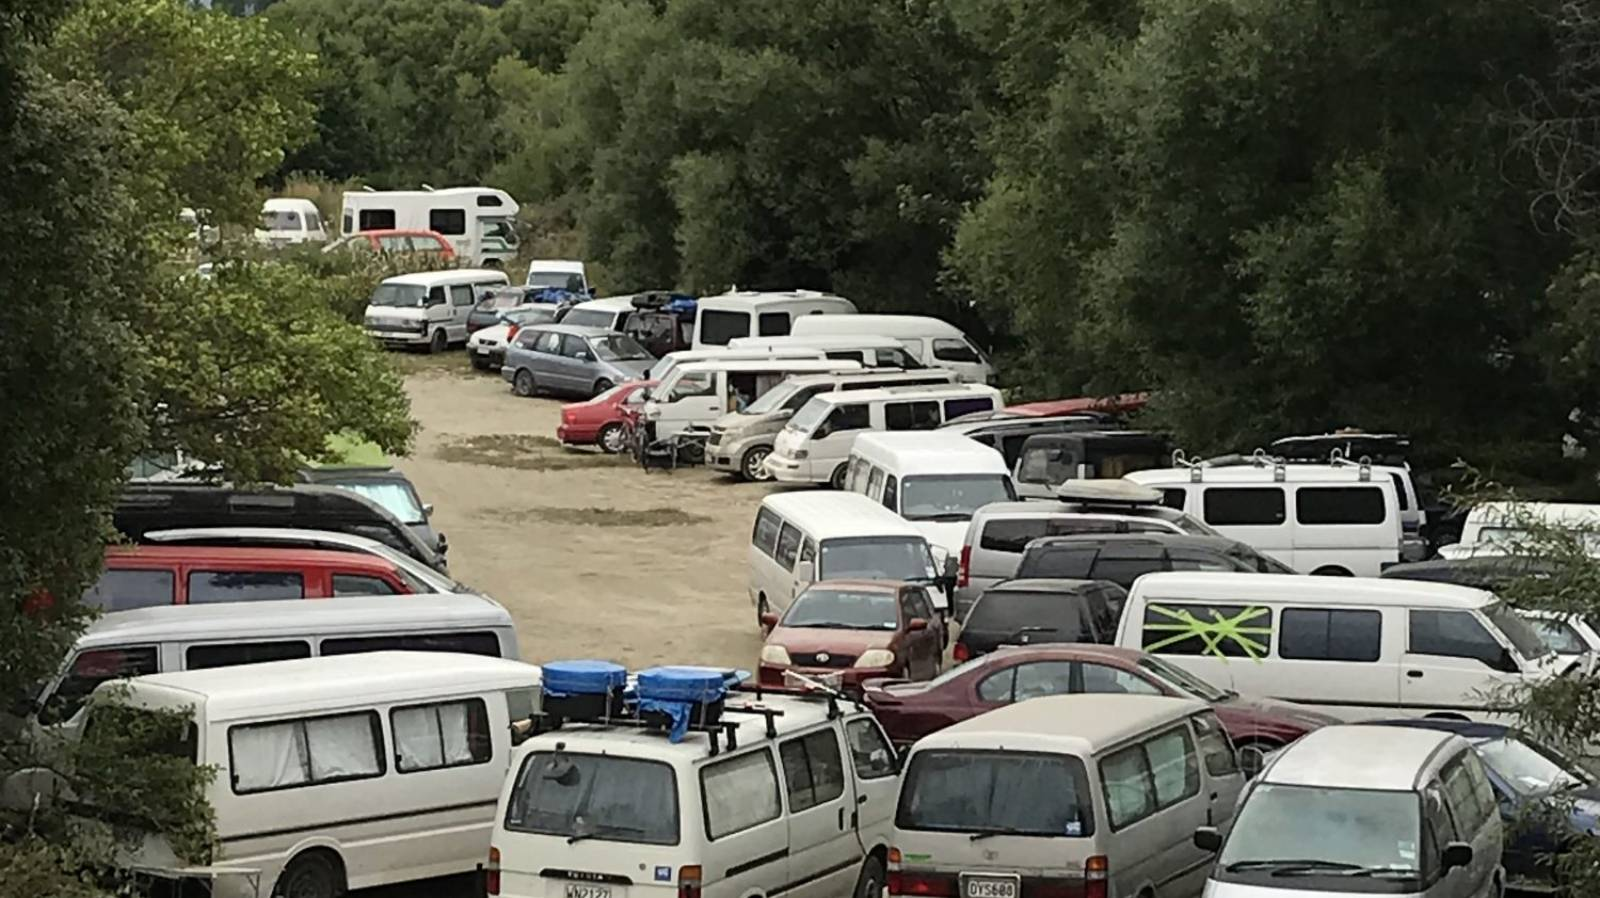 Freedom camping sites culled